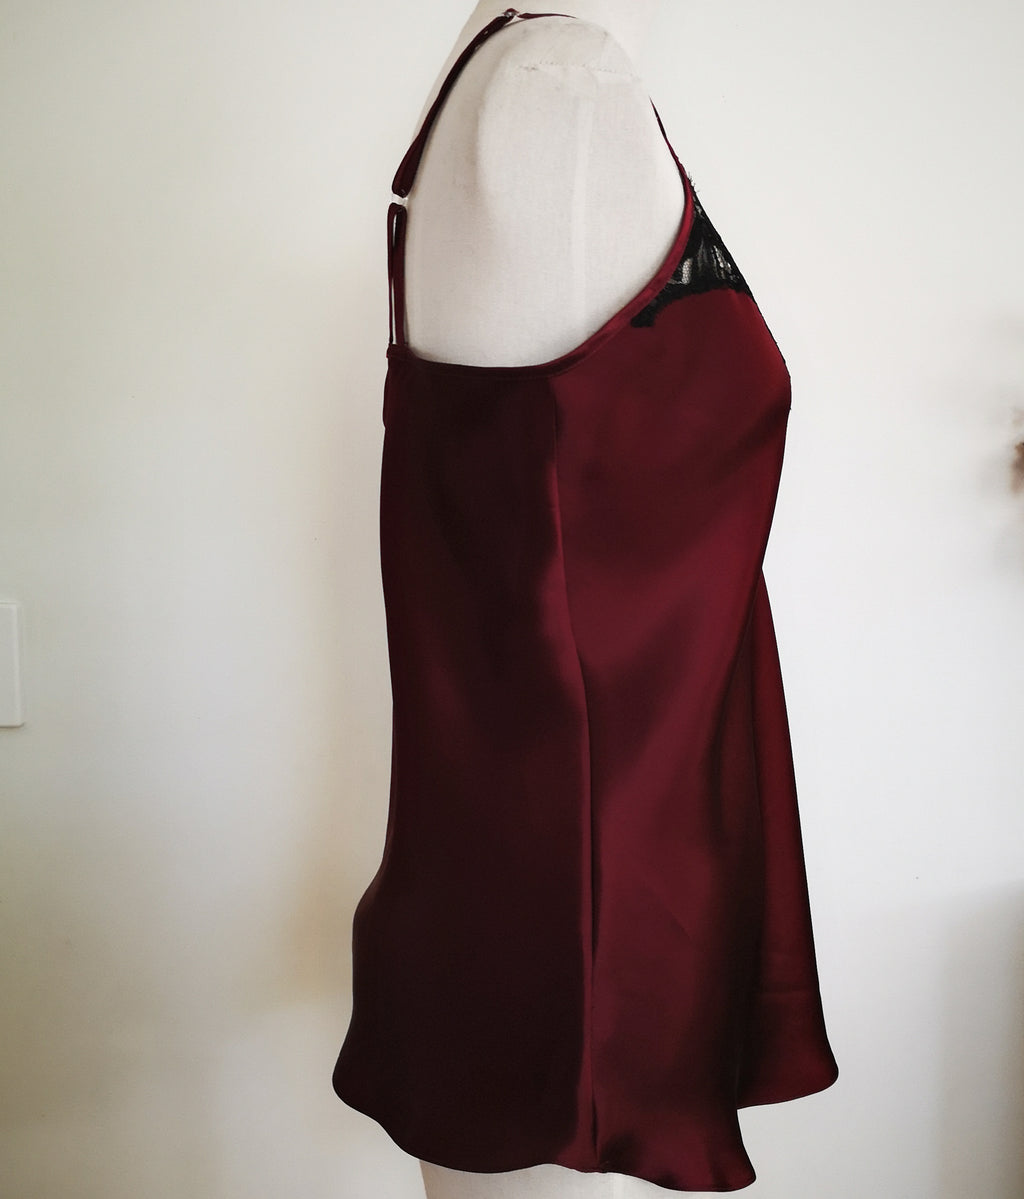 Plum silk camisole w/ lace trim - Size Medium